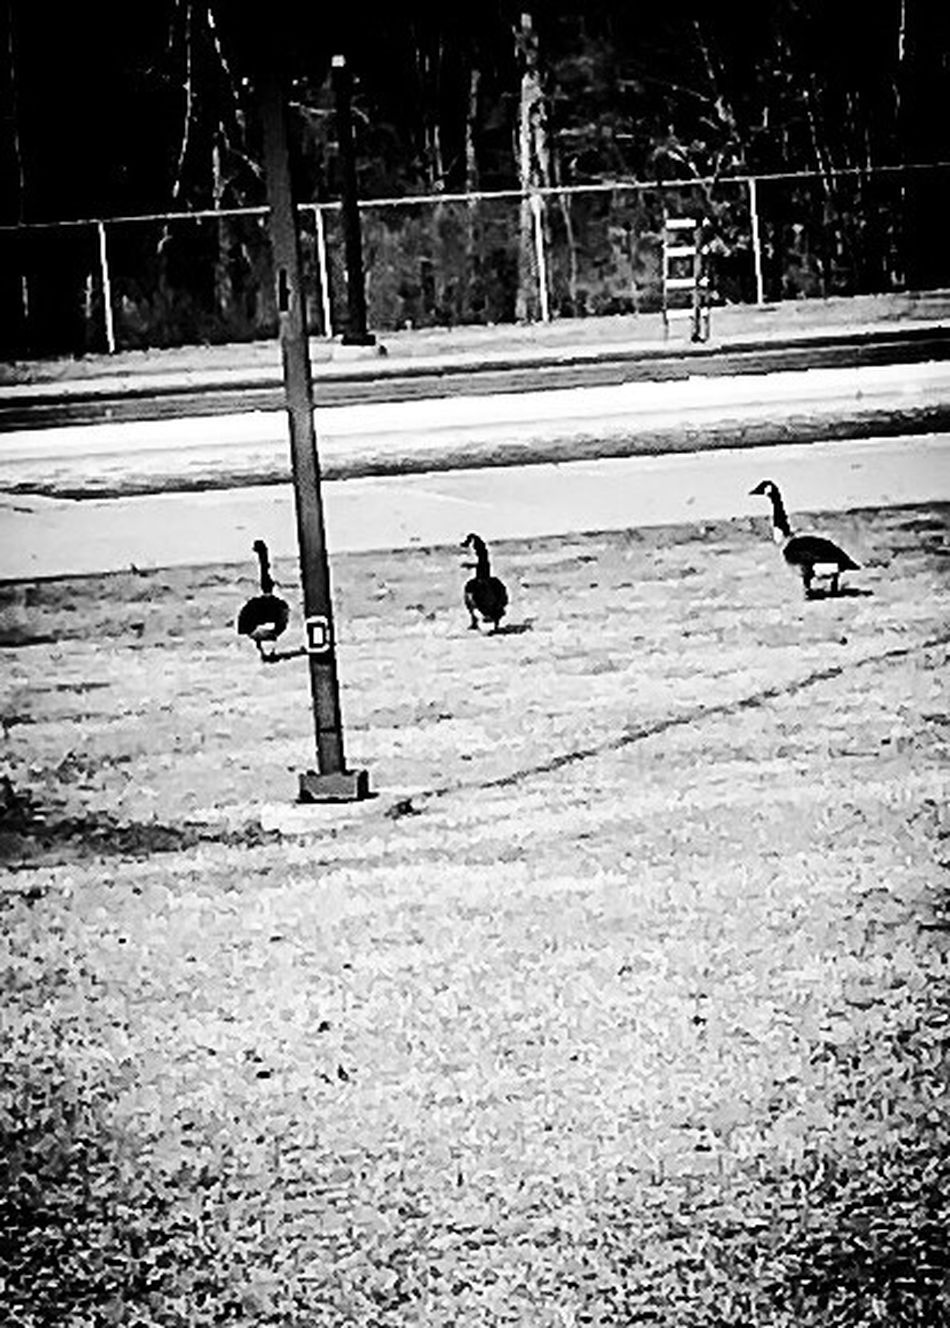 Some visitors at the local pool in winter Outdoors Day One Person Sky Camerafilters IPhone7Plus Blackandwhite Photography Bare Tree Clear Sky